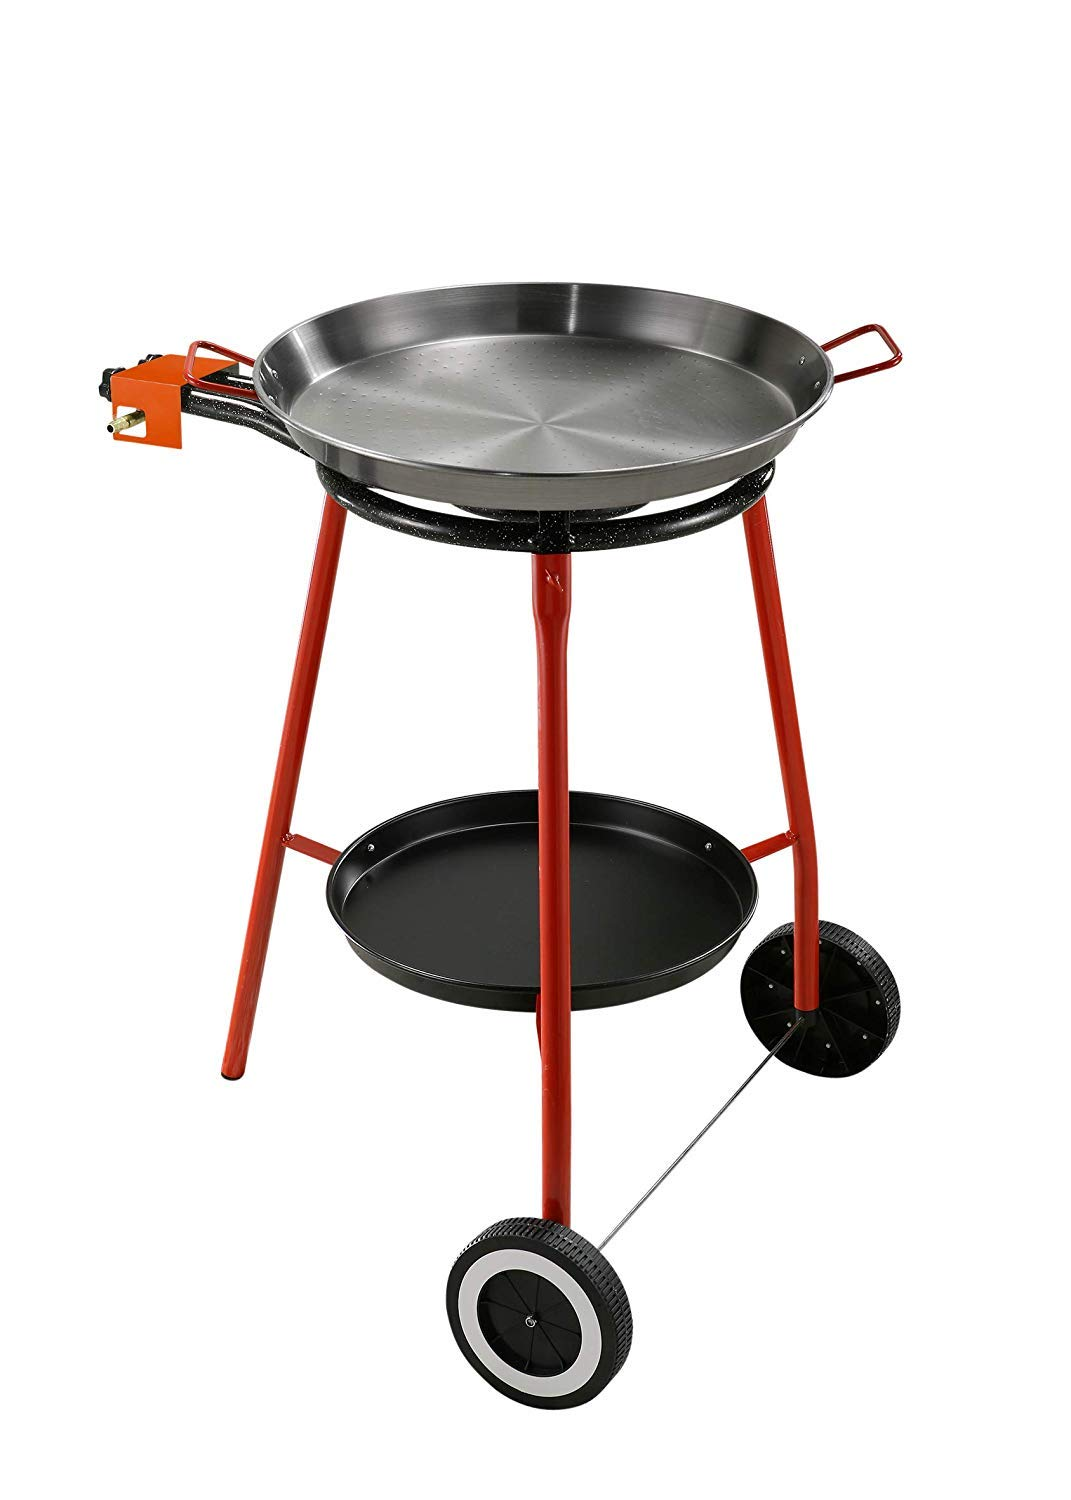 Garcima Cooking Kit on Wheels with 18-inch Carbon Steel Paella Pan by La Paella